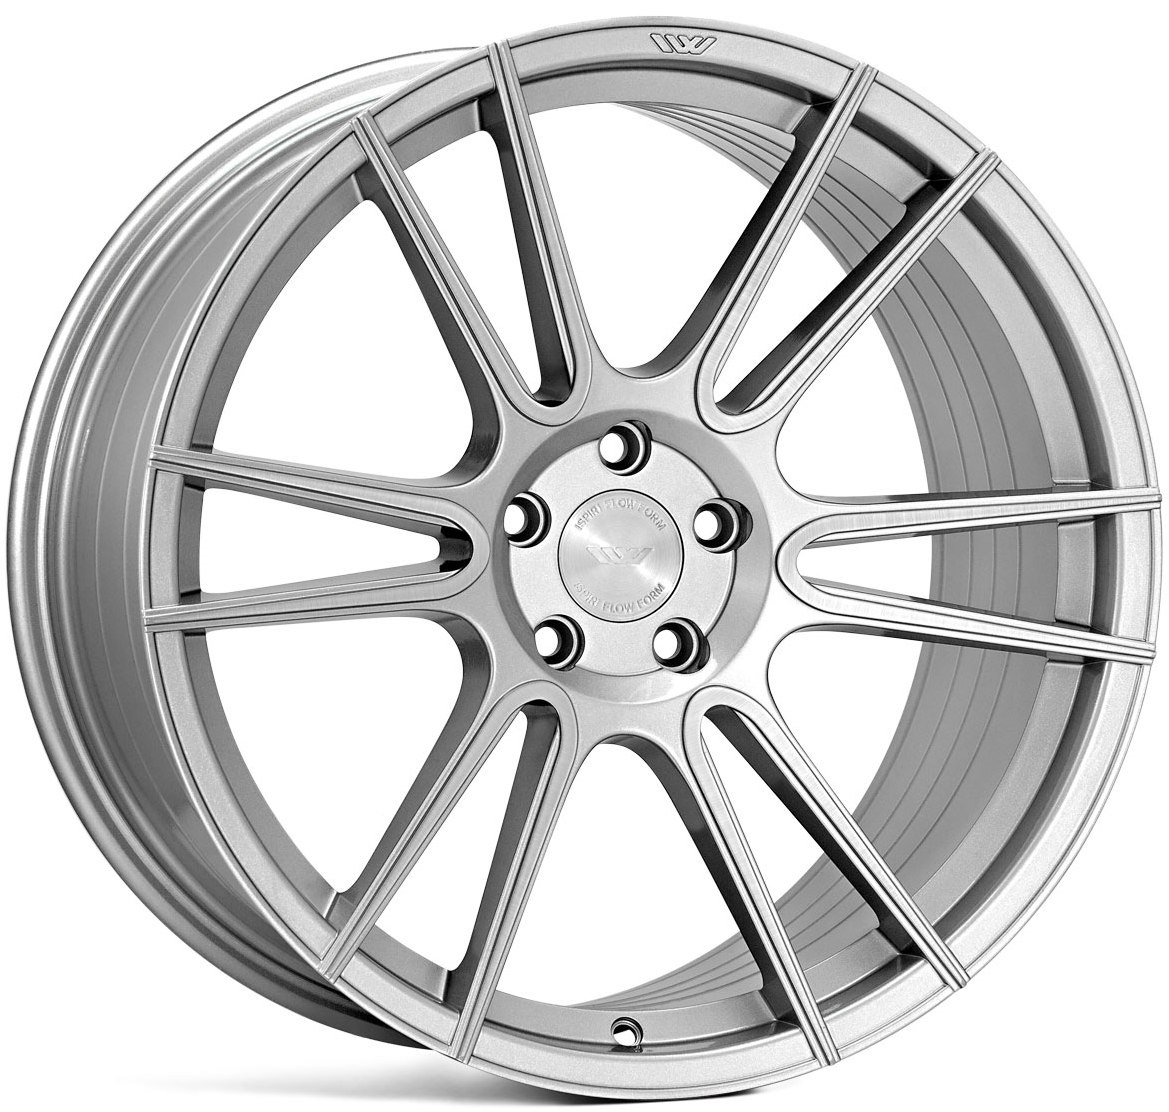 IW Automotive - FFR7 (Pure Silver Brushed)